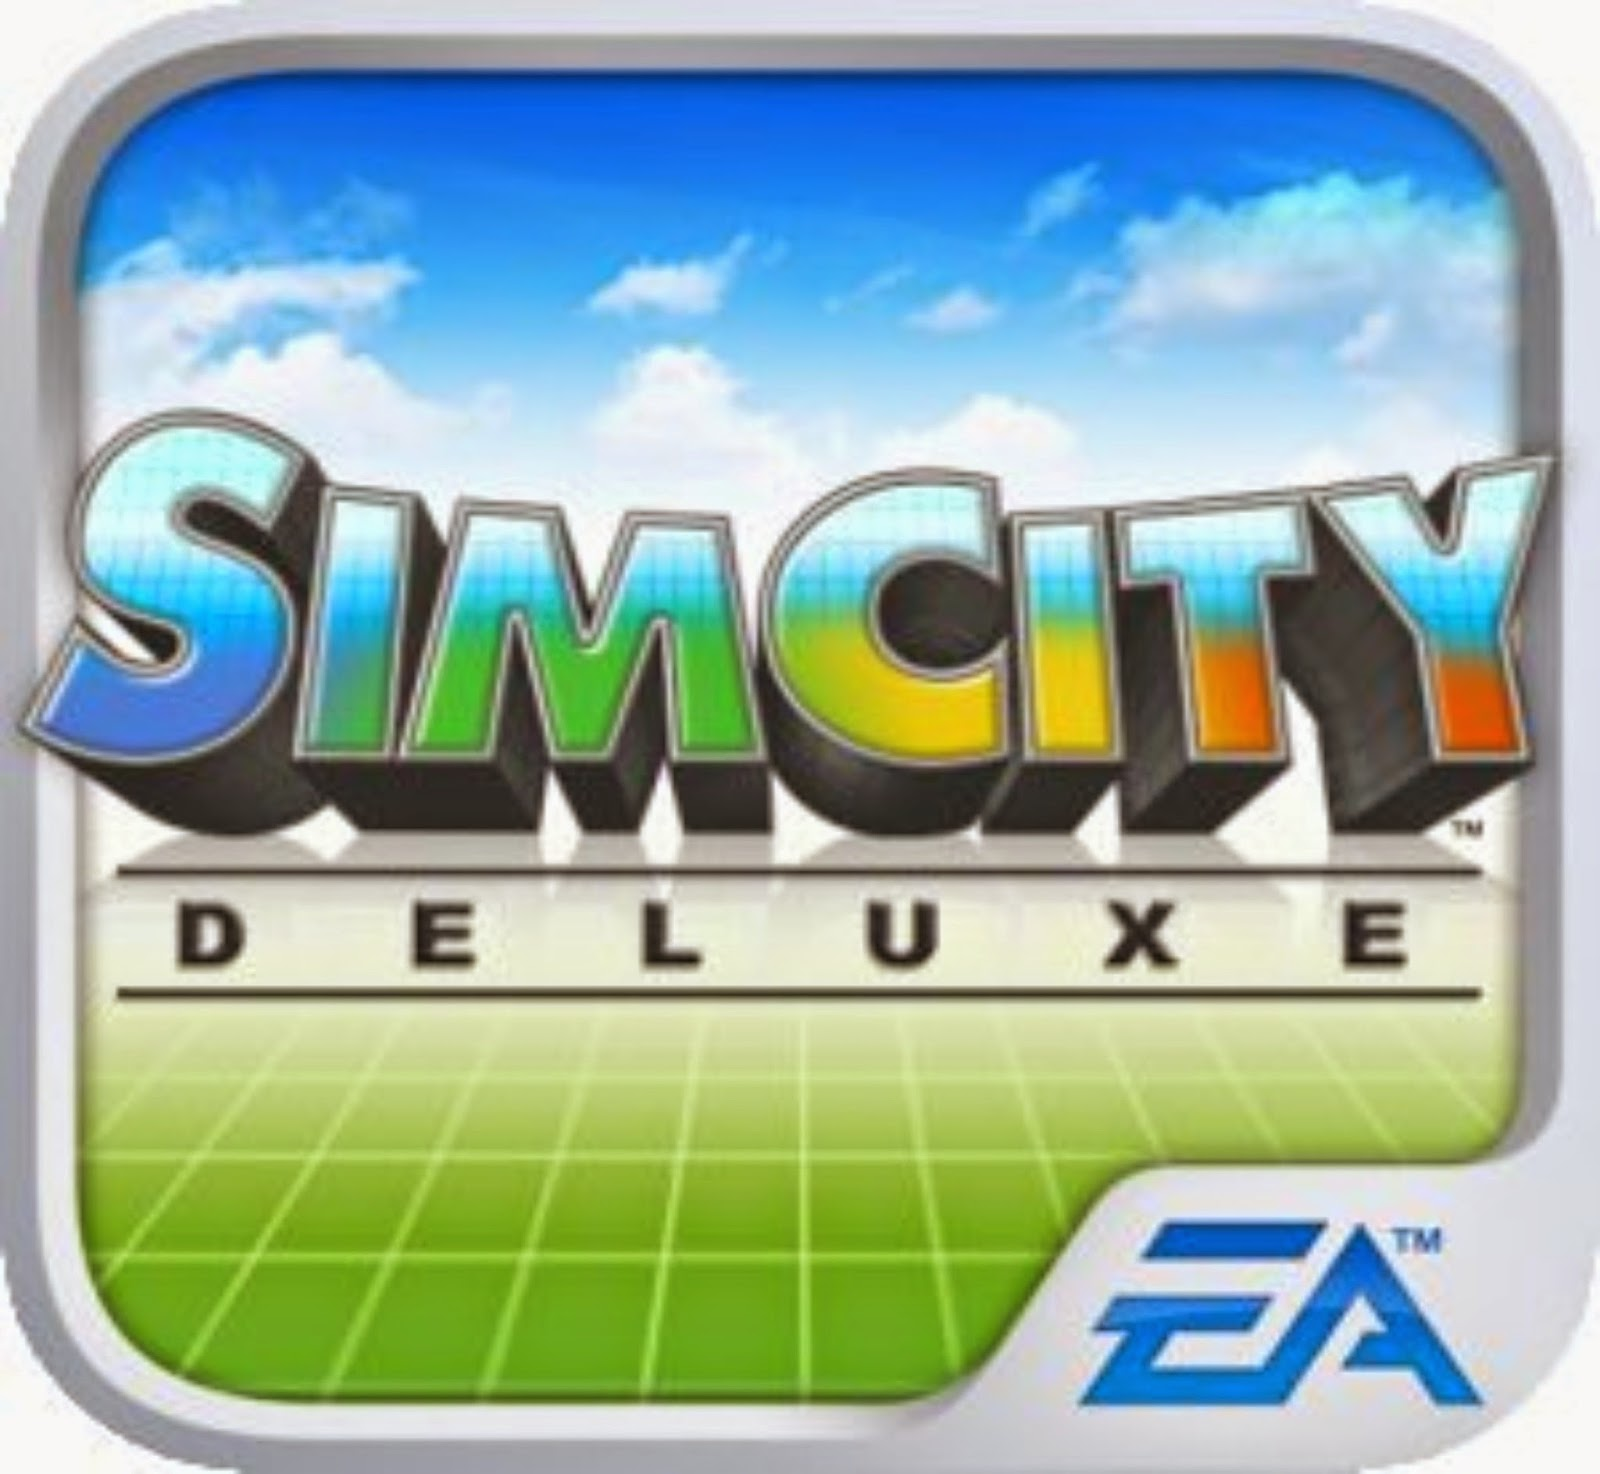 SimCity Deluxe Apk Data Android